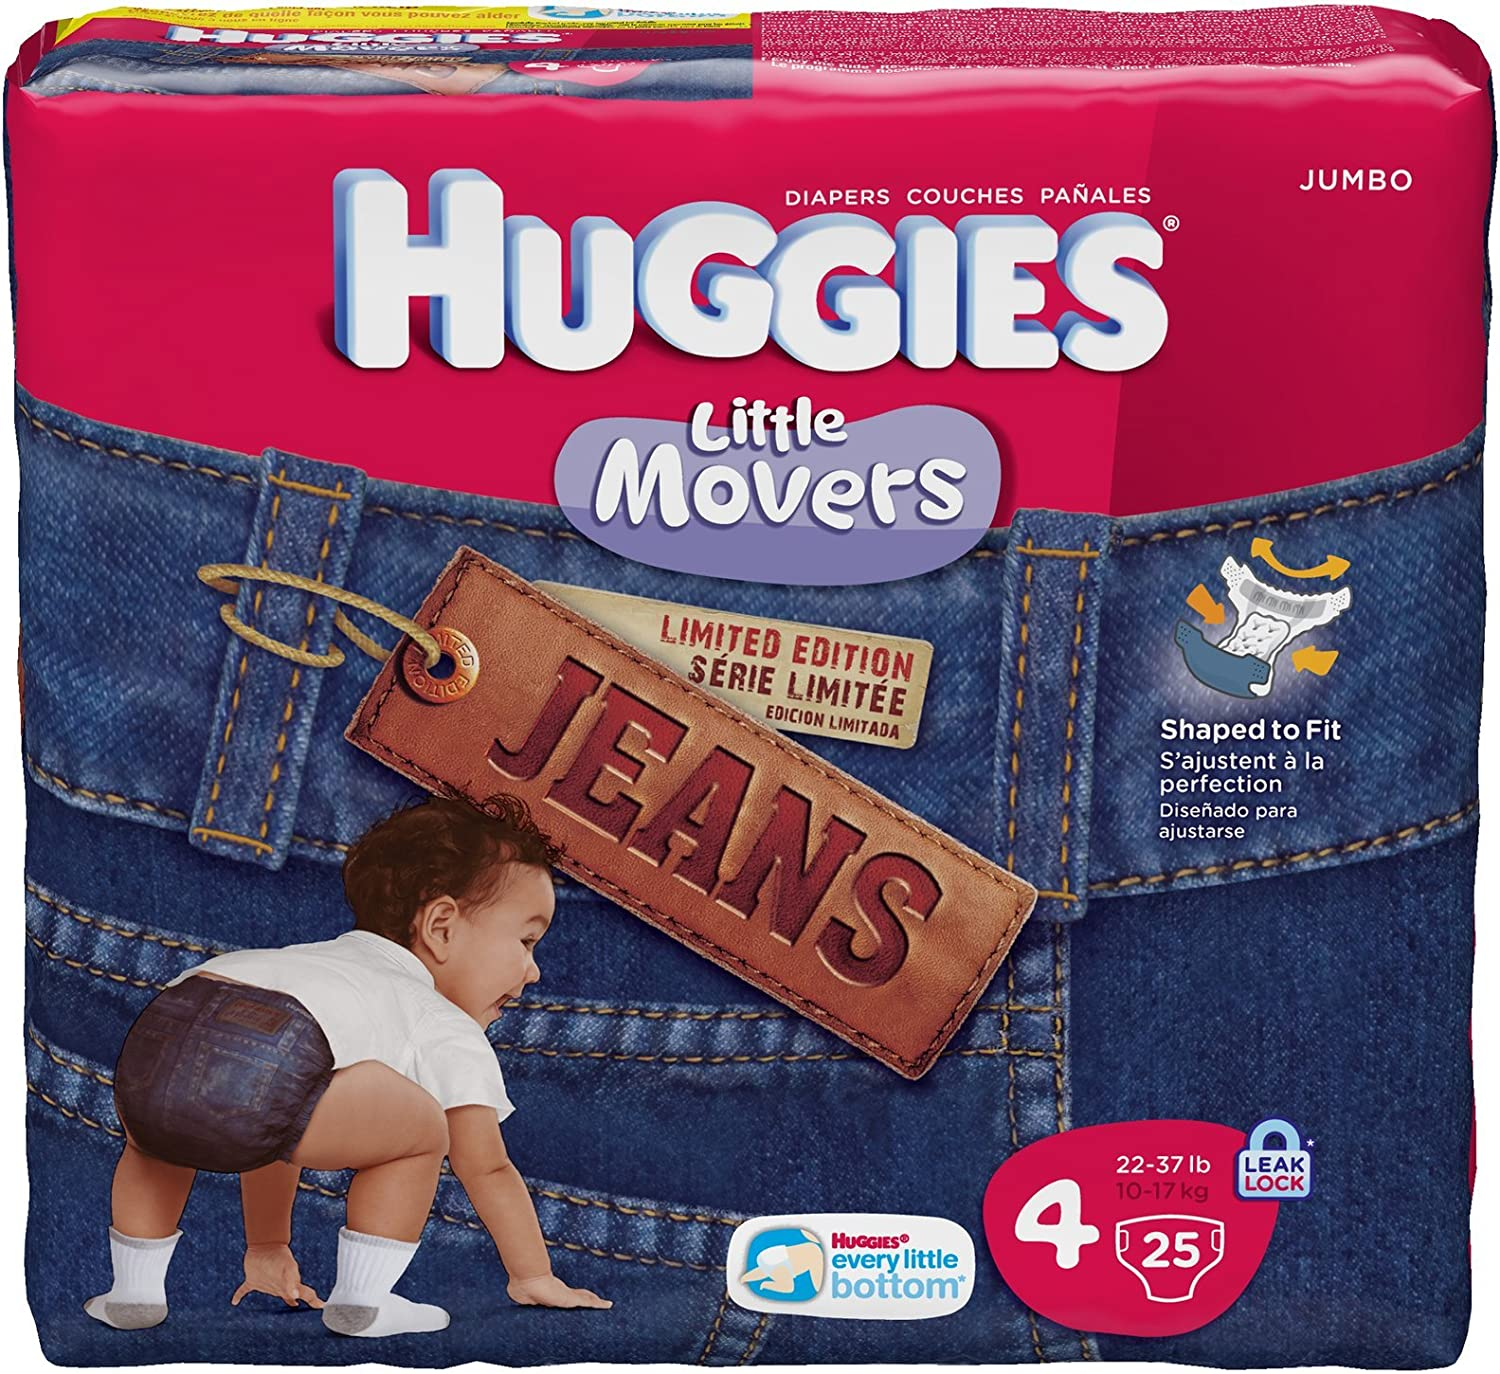 Huggies Little Movers Diapers, Jeans, Size 4 (22-37 lb), Jumbo